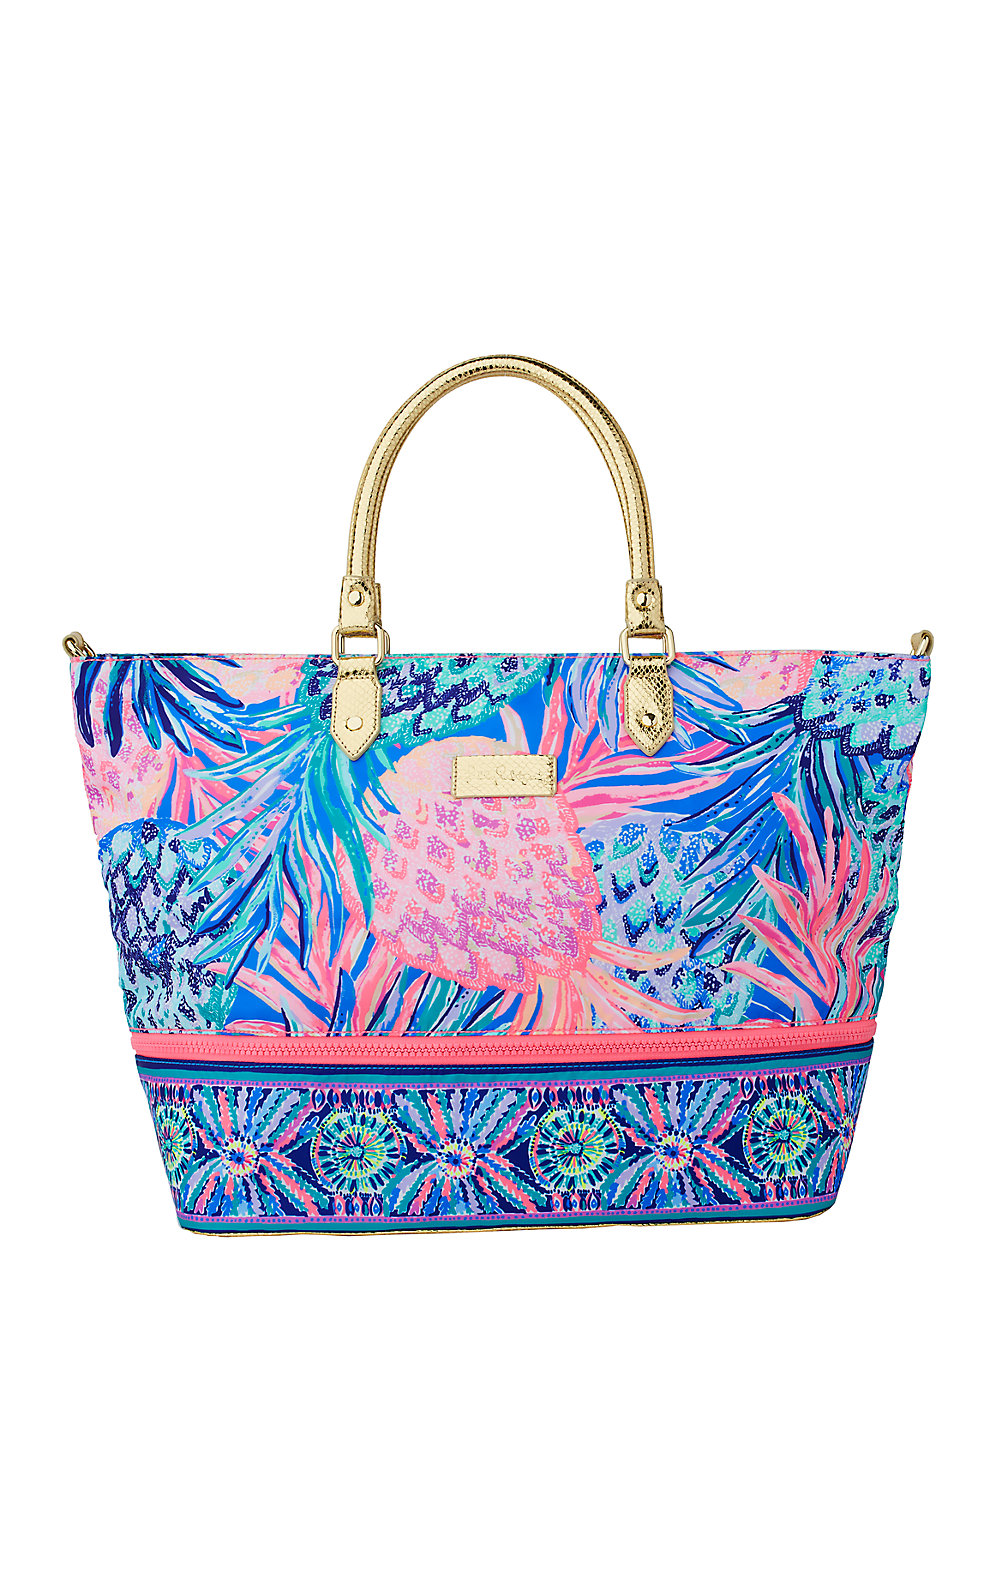 Lilly Pulitzer Weekender Travel Tote Bag